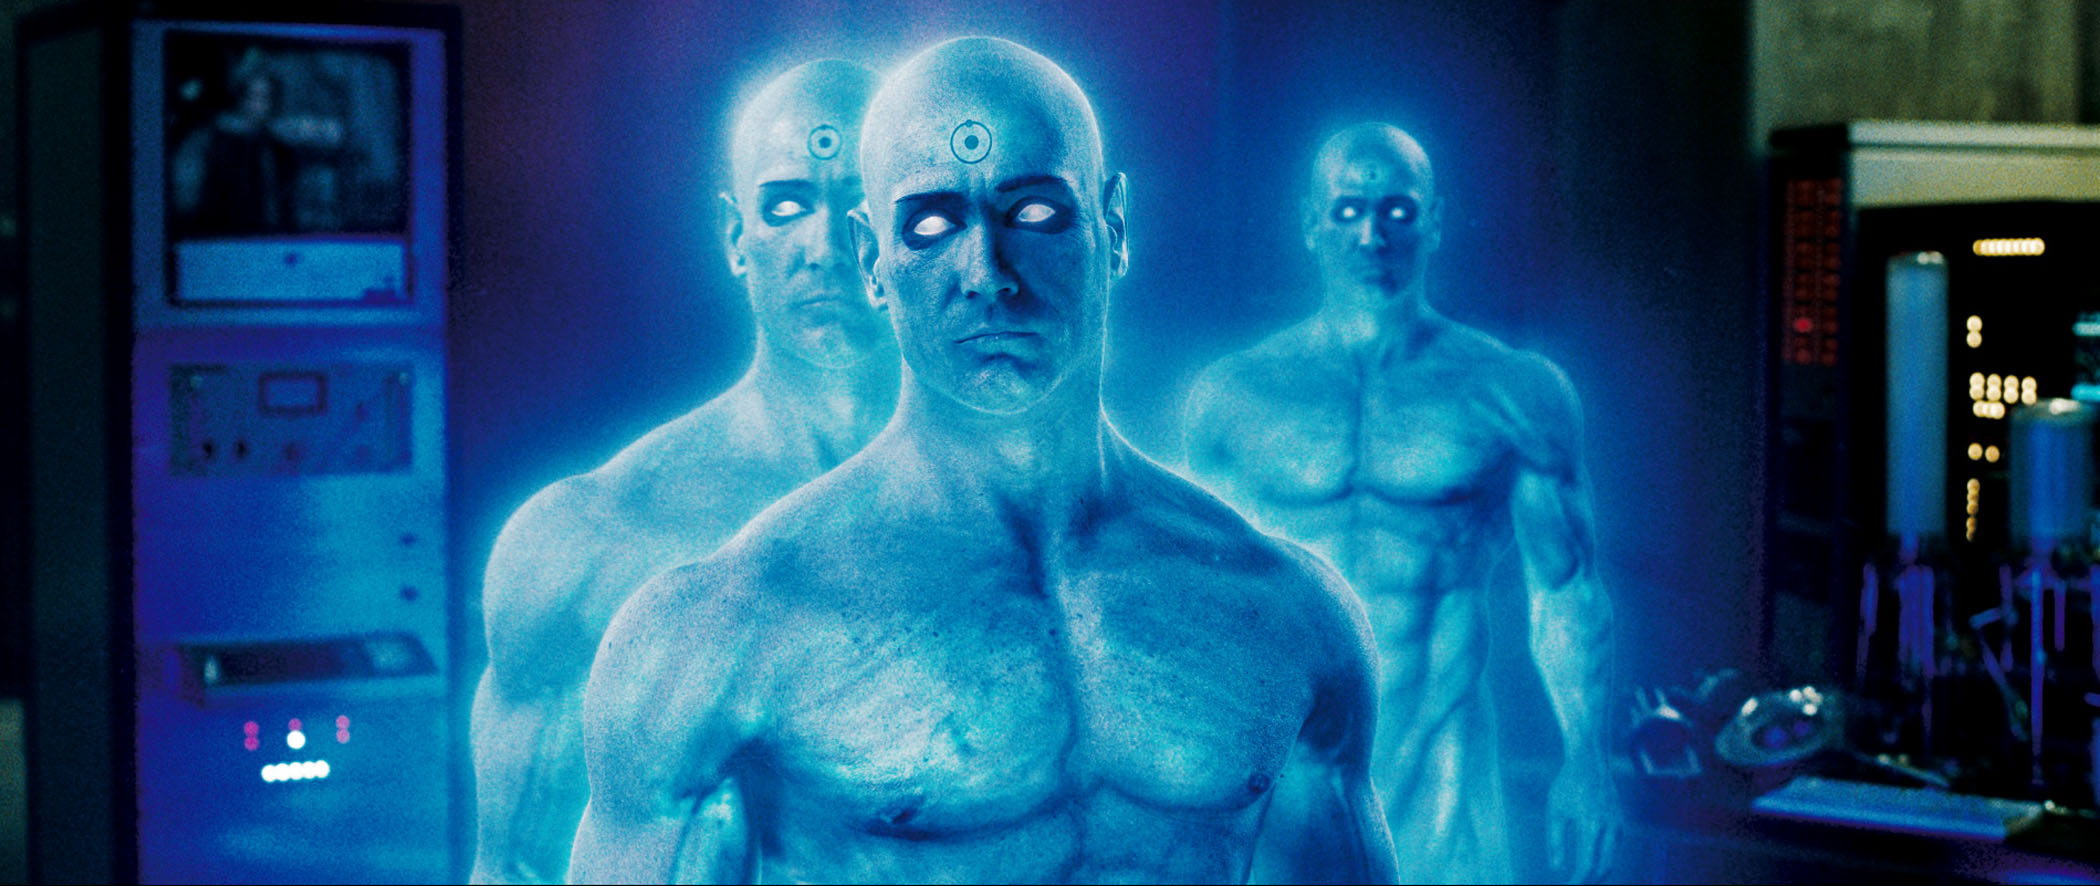 Комиксы - Watchmen  - Dr Manhattan - Doctor Manhattan Обои